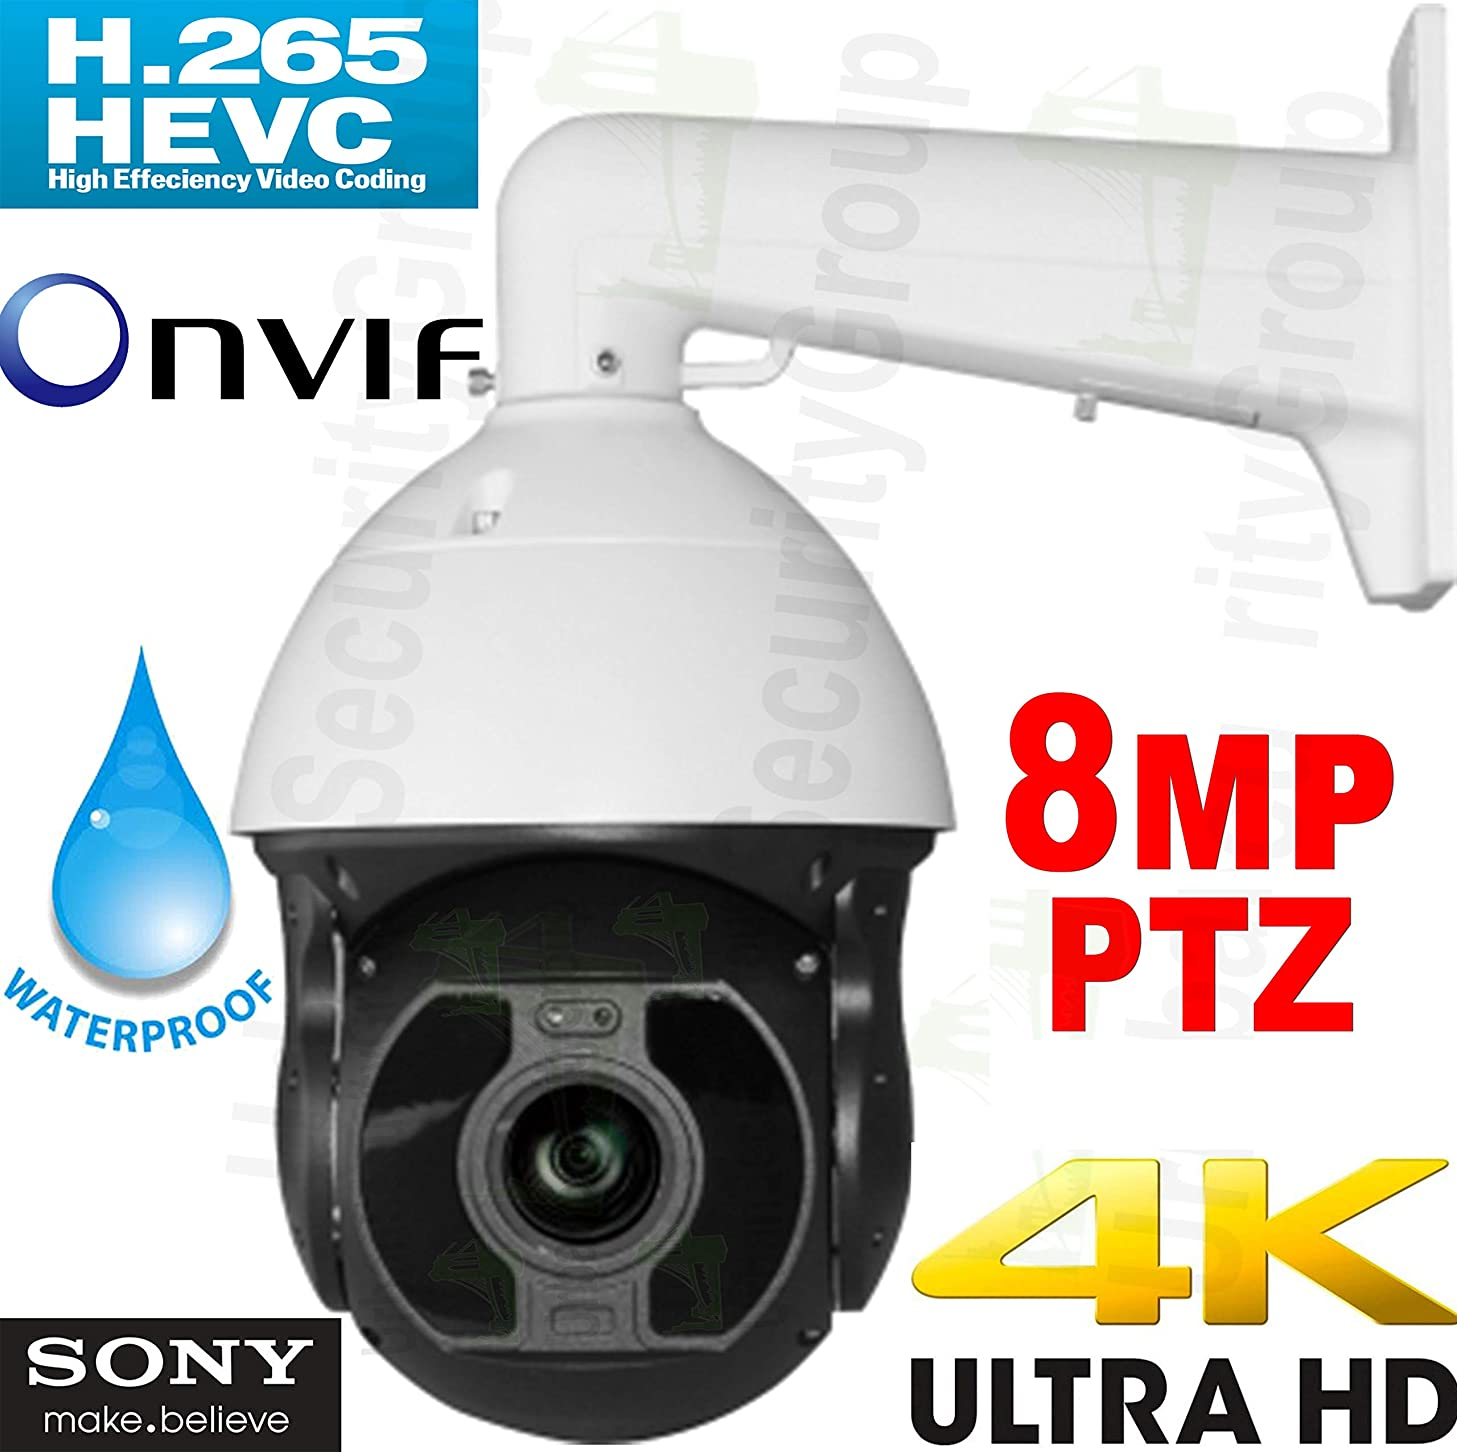 Urban Security Group IP PTZ Ultra 4K 8MP Speed Dome Security Camera : 6-216mm 36x Optical Zoom Auto-Focus Lens, 10x IR German LEDs 500ft, ONVIF, Weatherproof, New Sony IMX334 Chipset : Business Grade